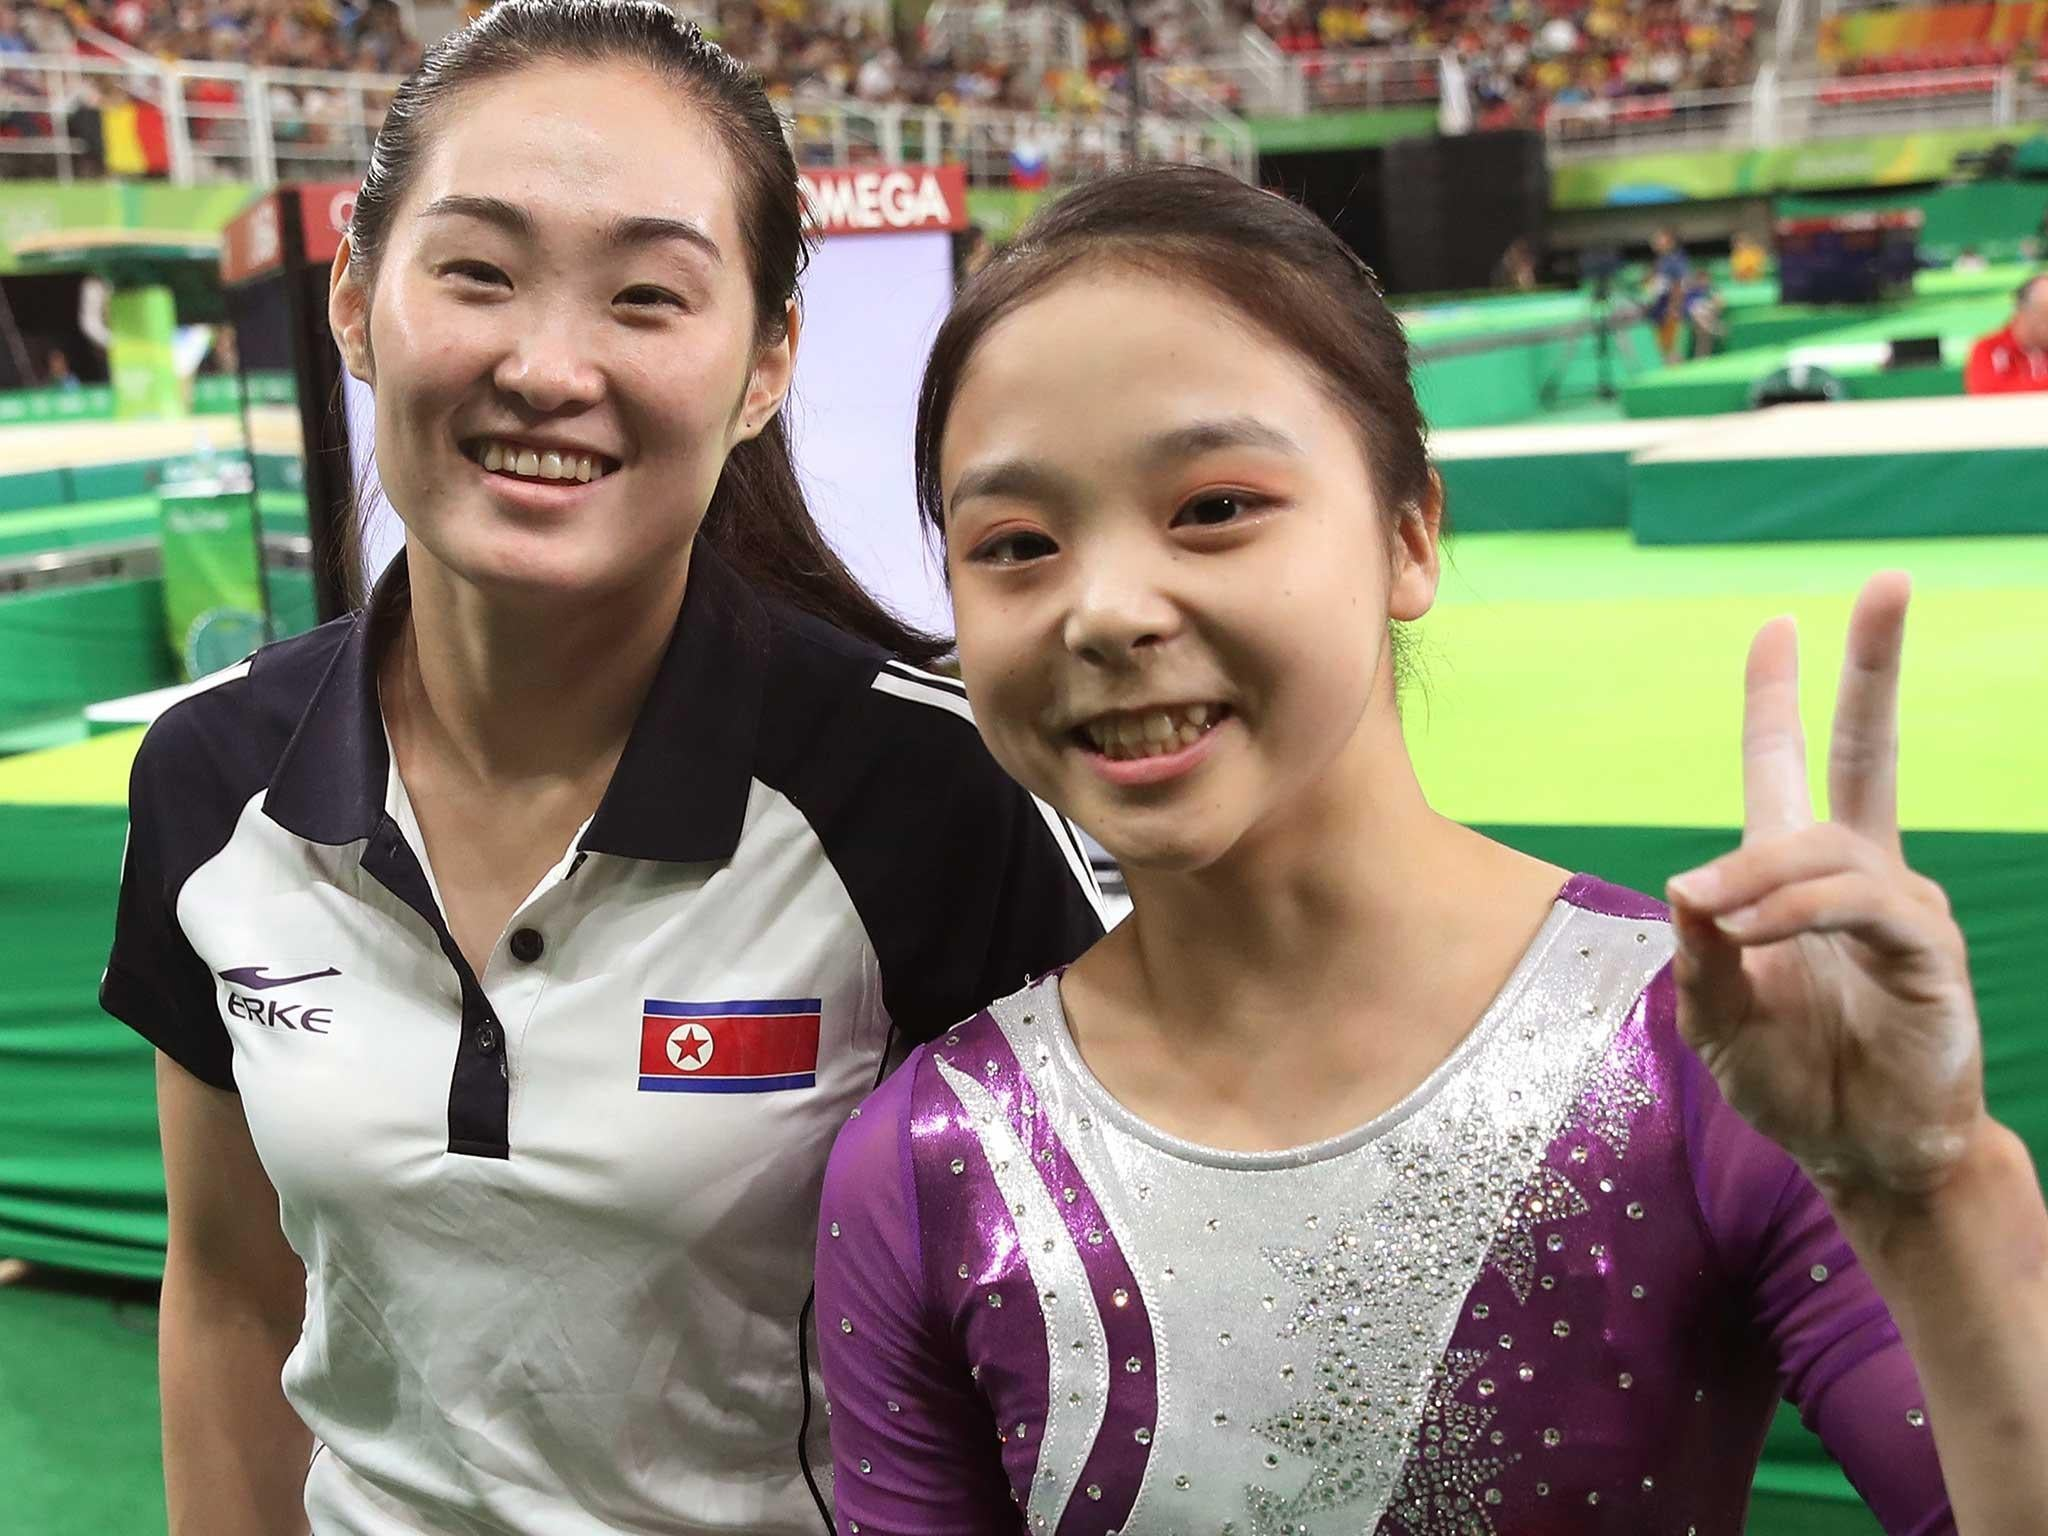 Touching glimpse of unity as North and South Korean gymnasts share smiles